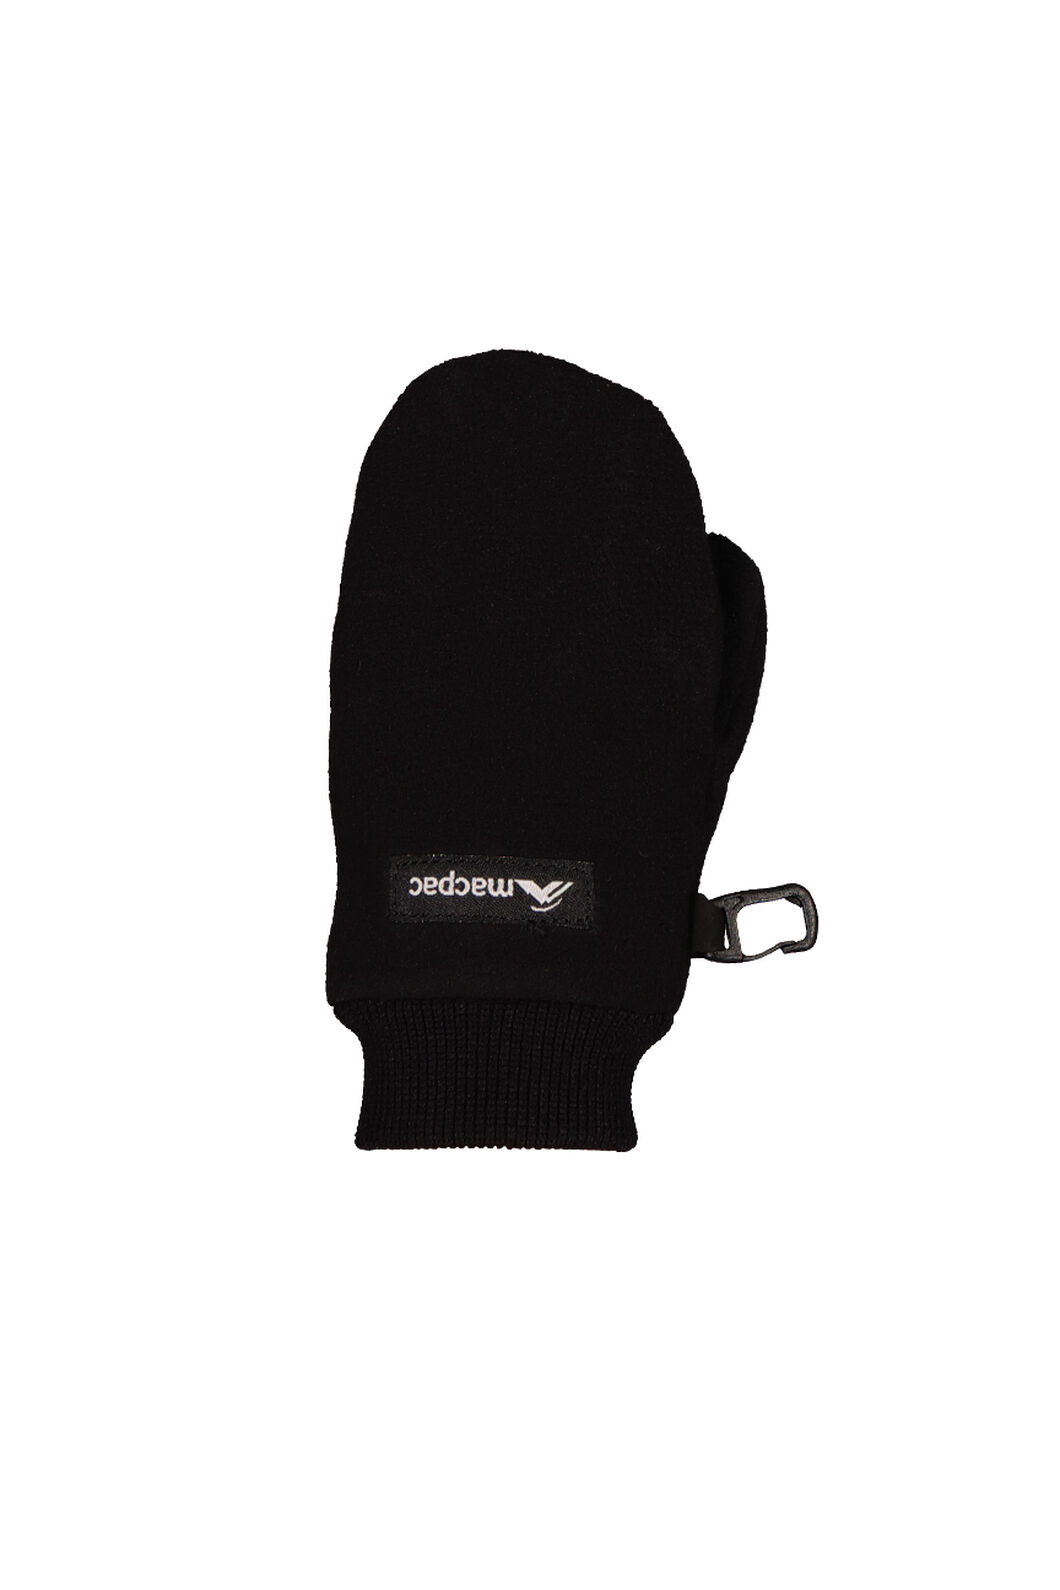 Macpac Fleece Mittens - Kids', Black, hi-res